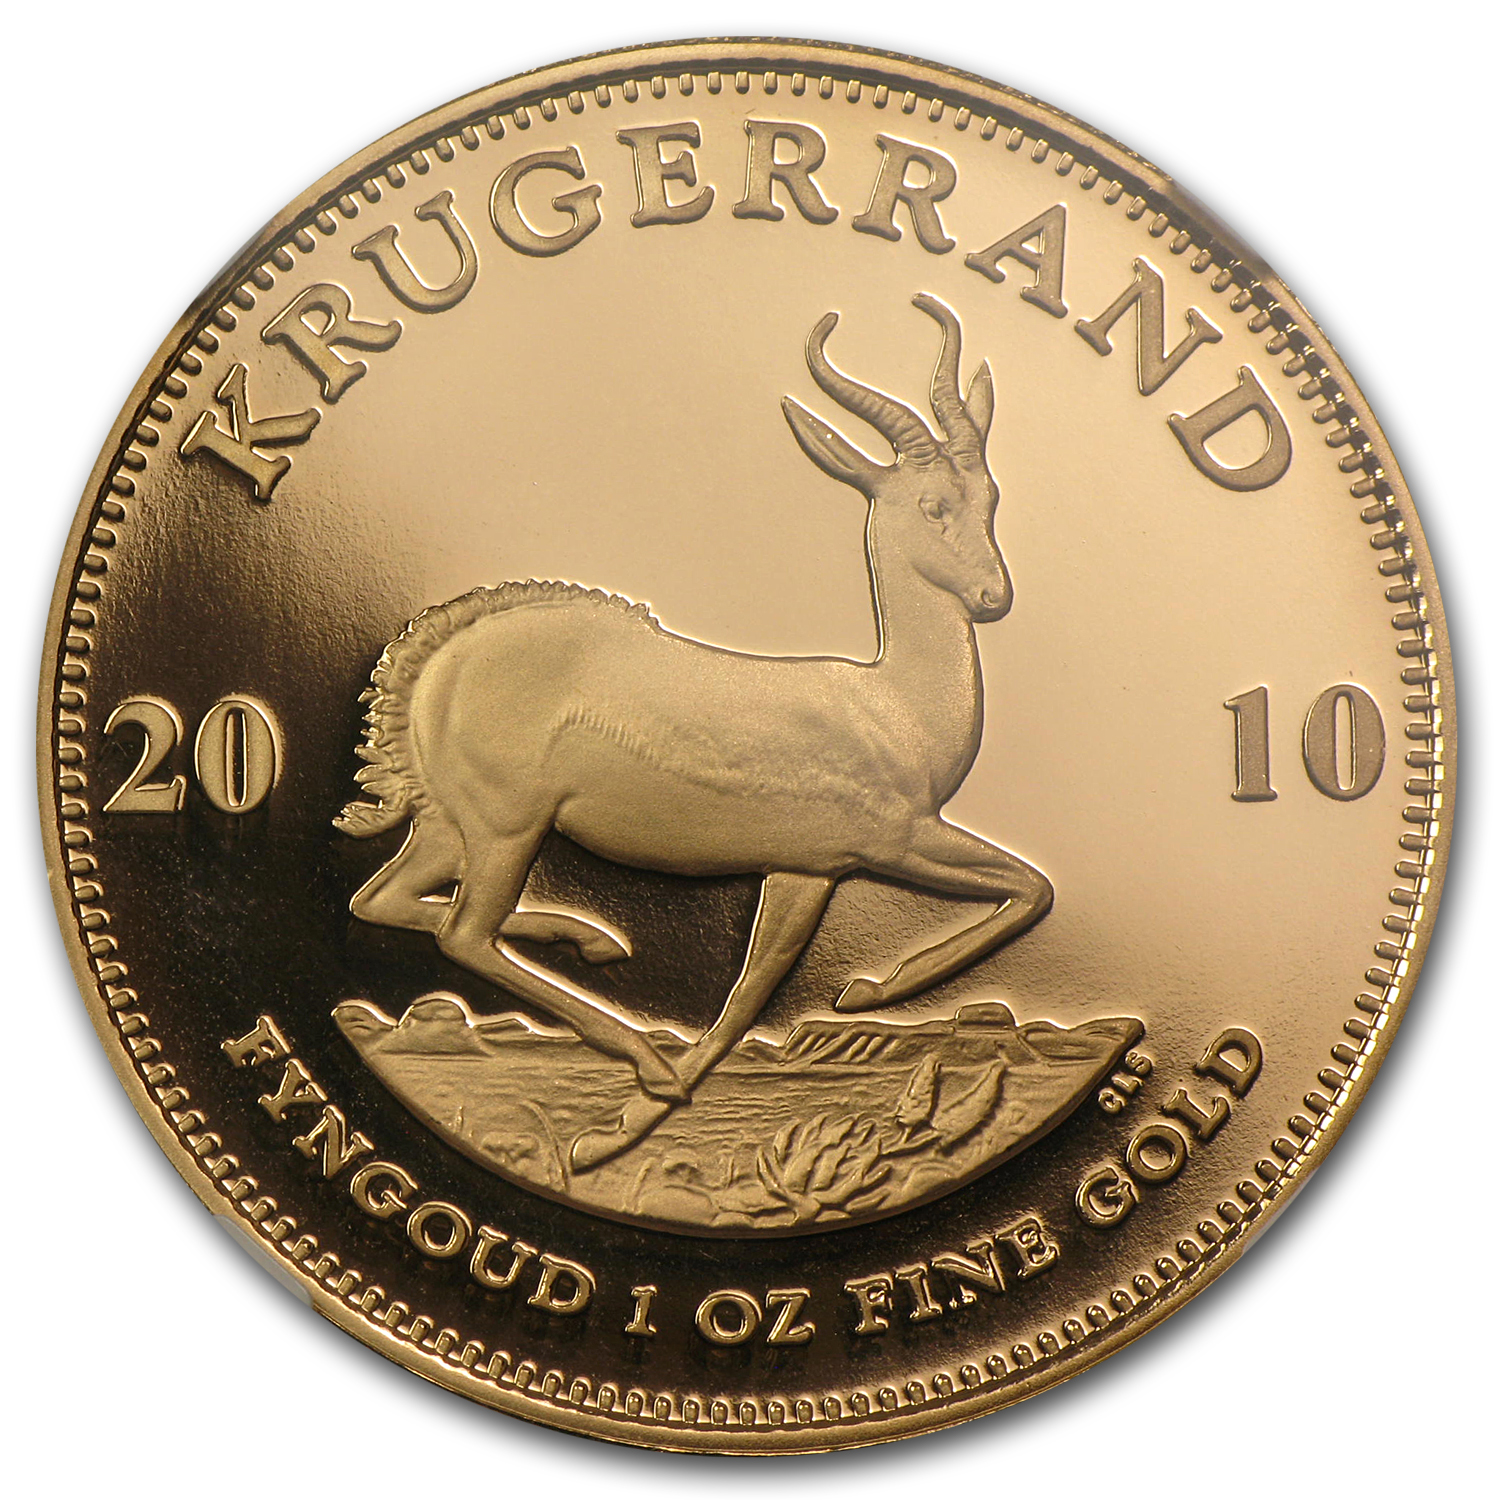 2010 1 oz Gold South African Krugerrand PF-70 NGC (Berlin)